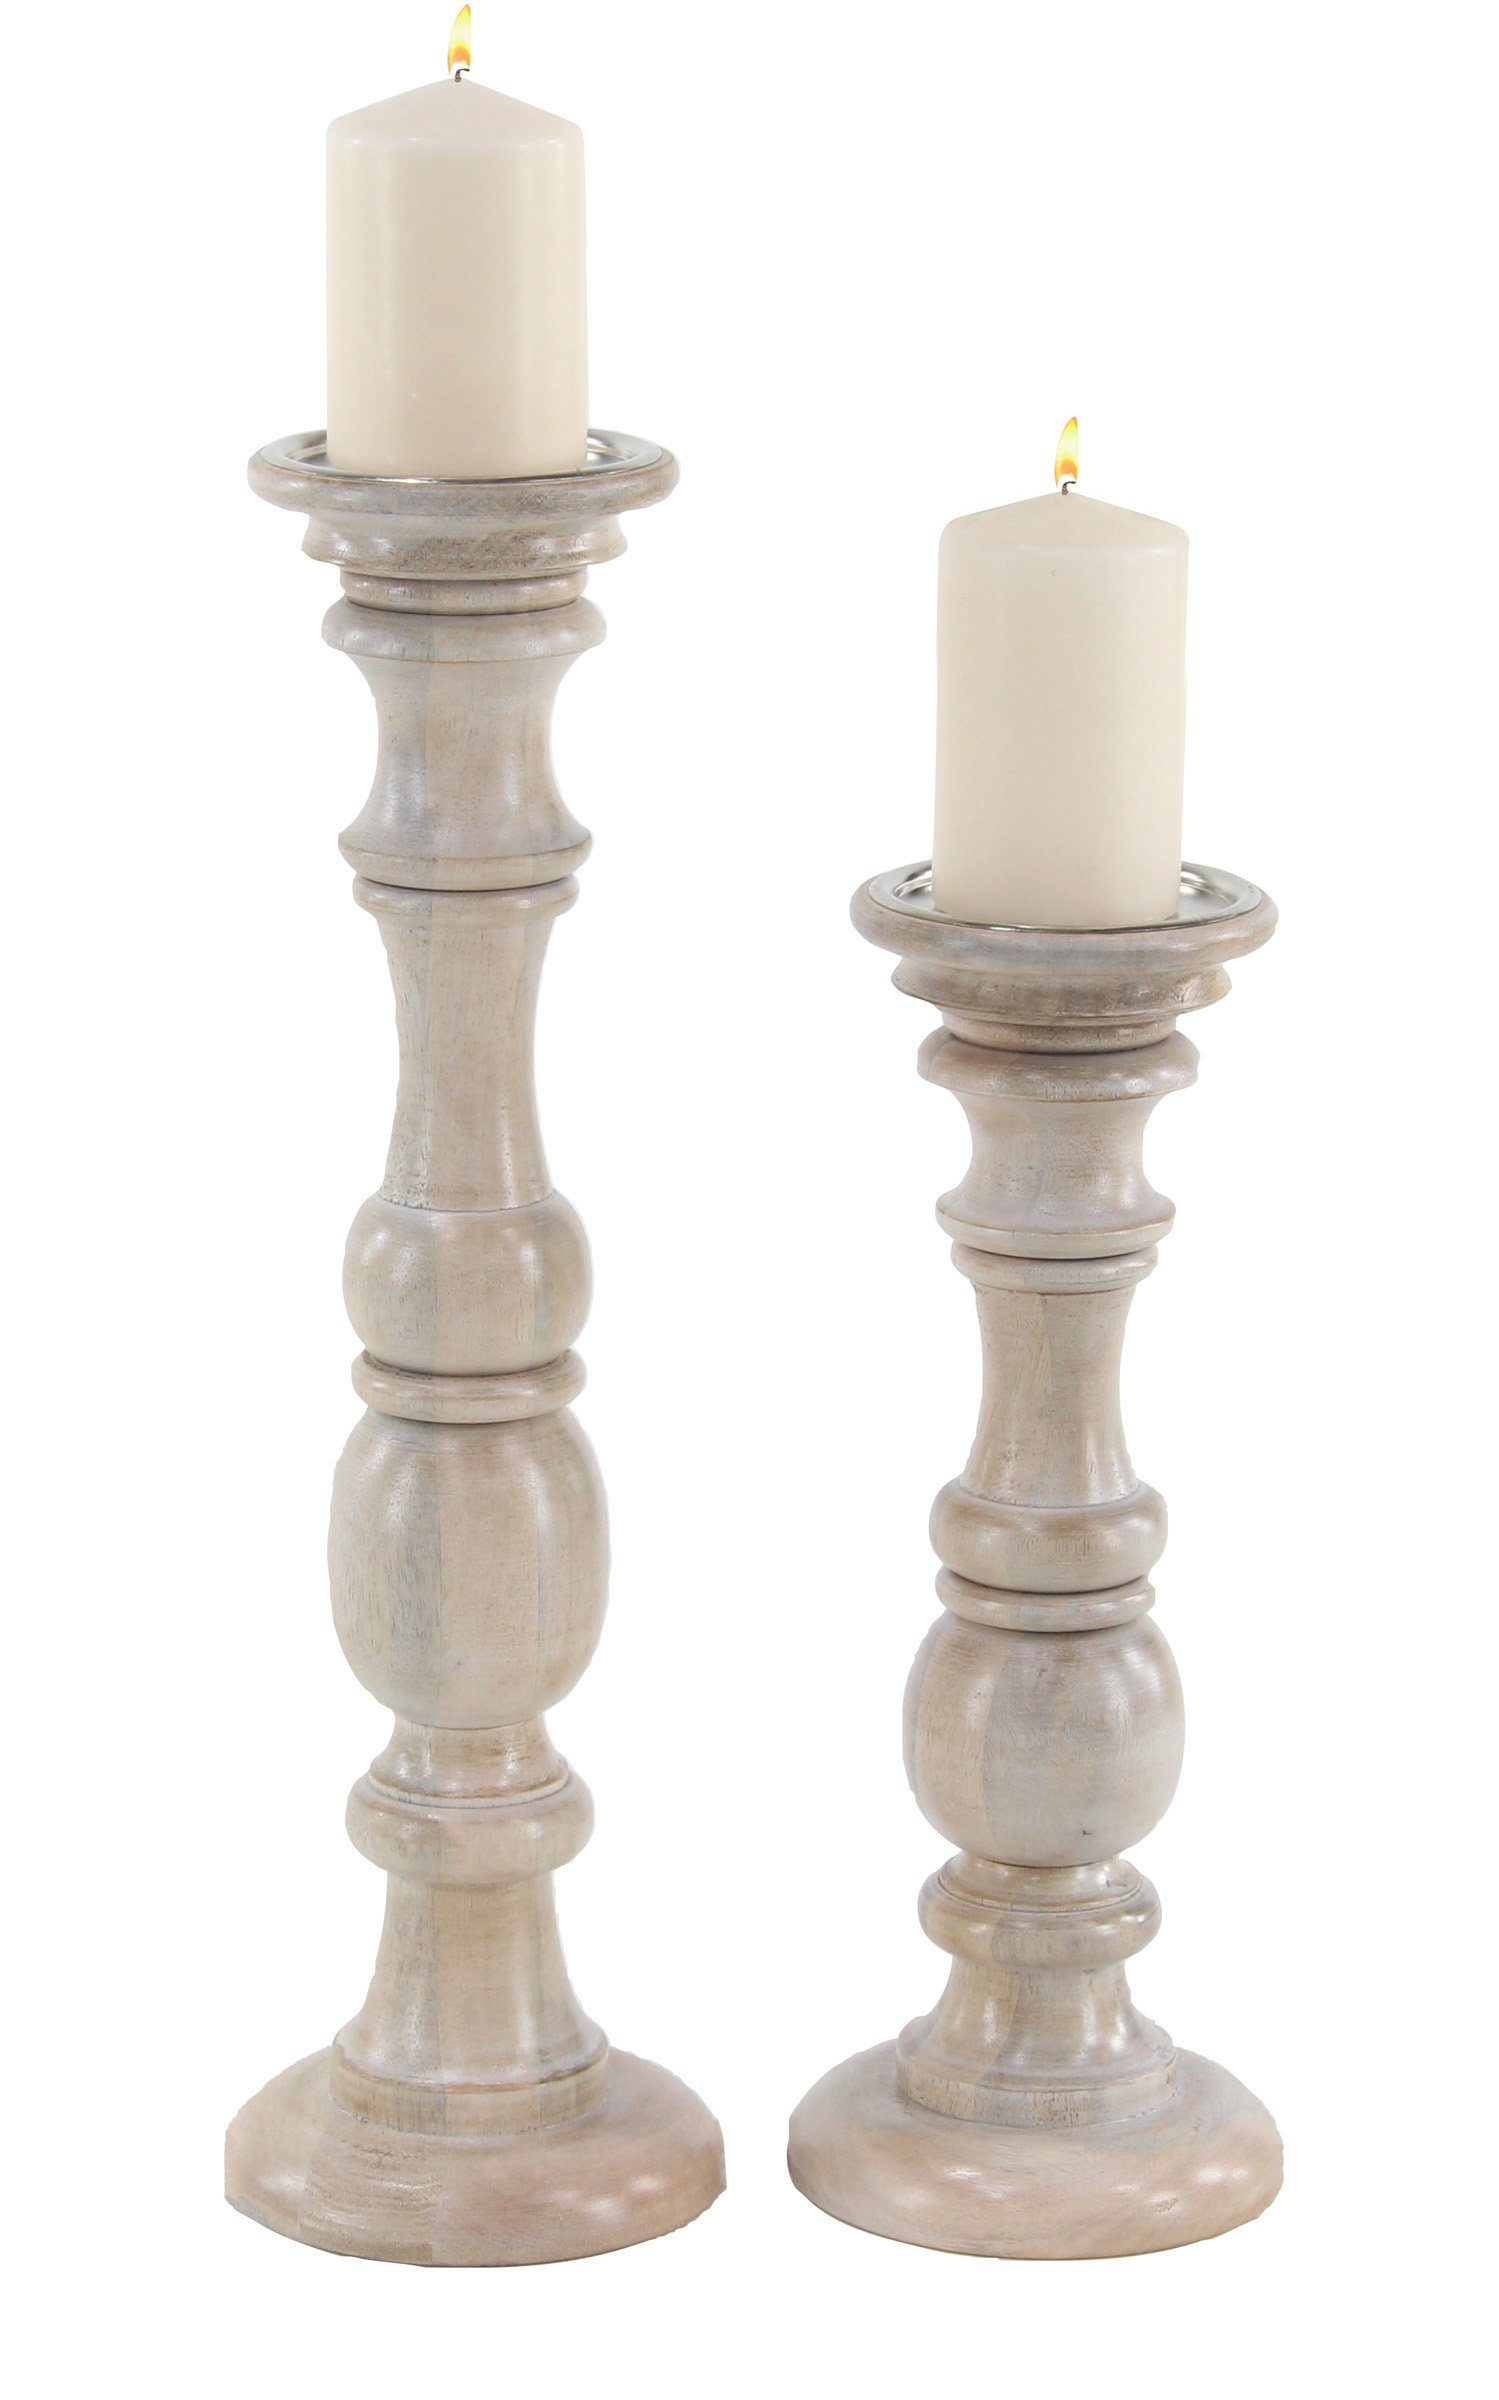 Ten Waterloo Set of 2 Wood Pillar Candle Holders, 21 Inches and 16 Inches High